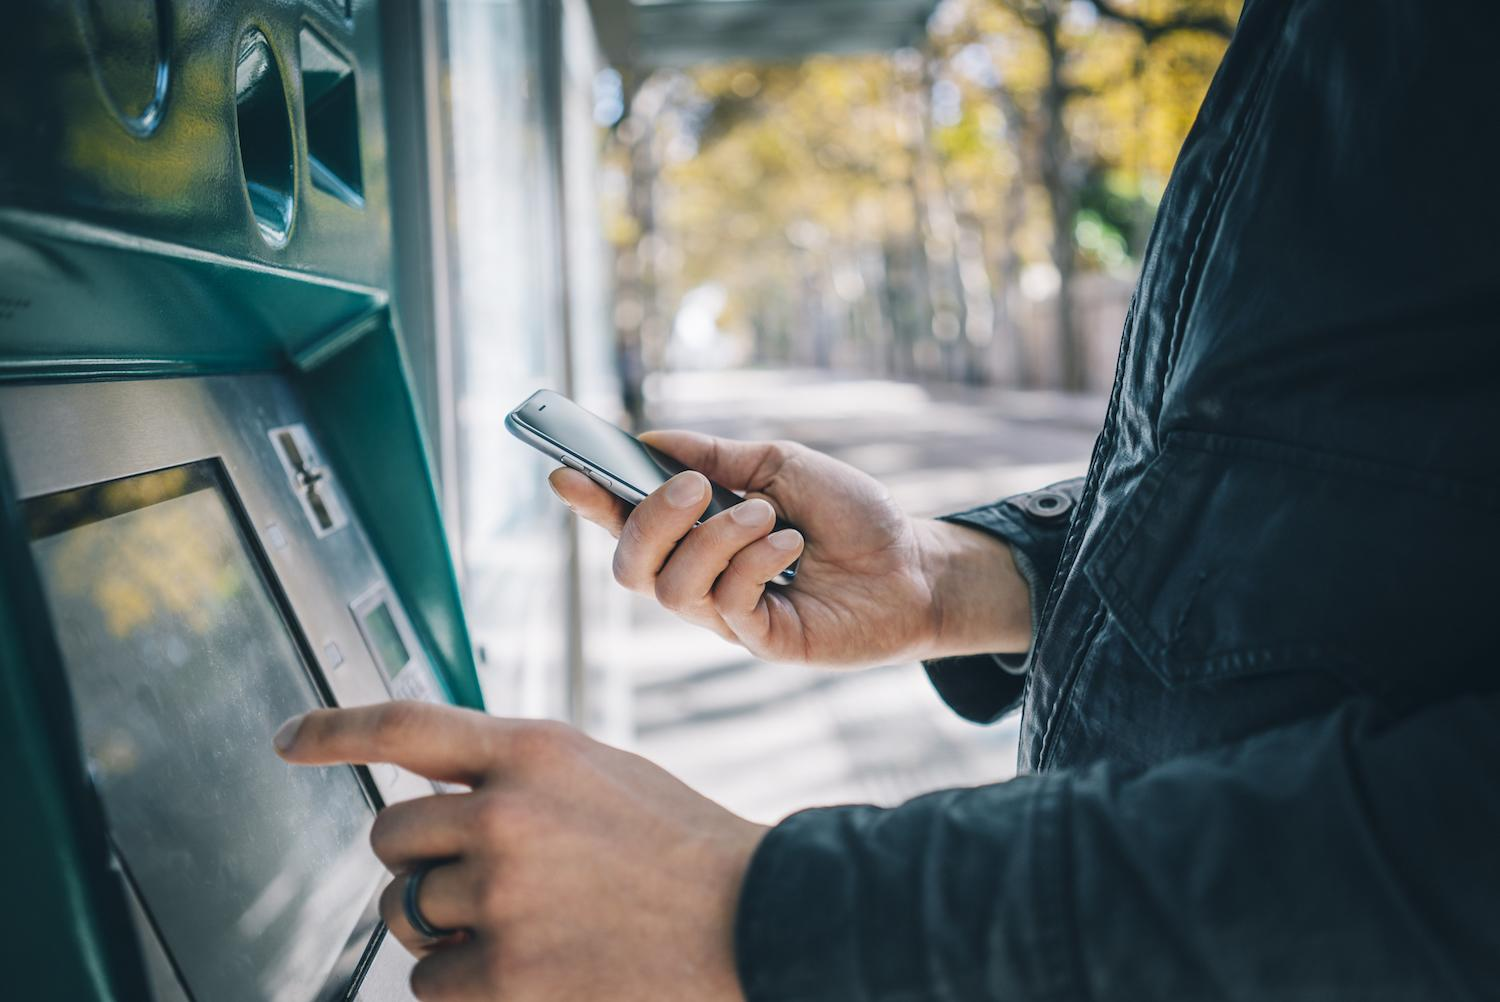 Coinsquare, Just Cash Partnership Enables Non-Bank ATM Crypto Transactions